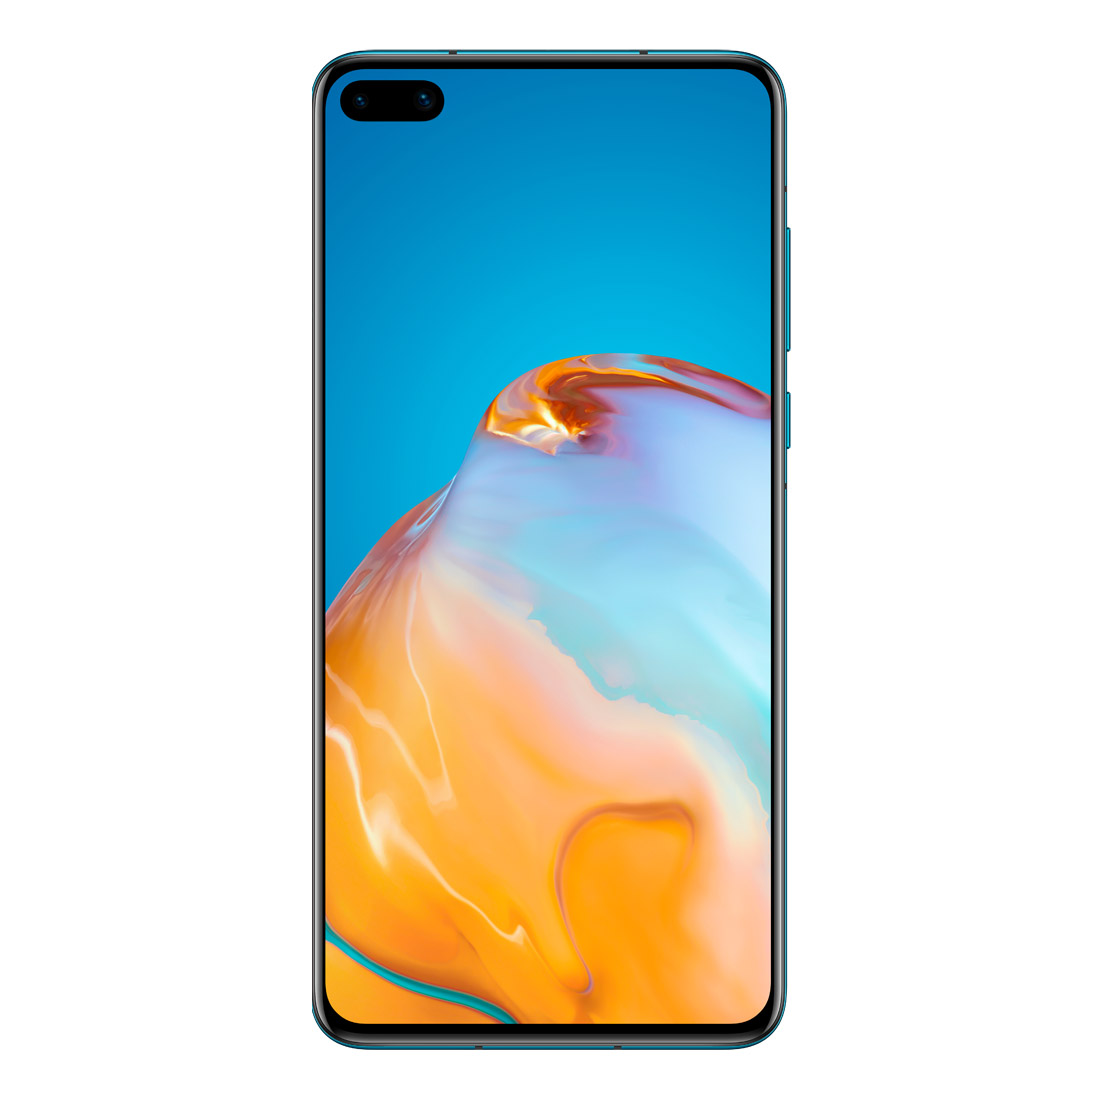 Huawei P40 (Dual SIM 5G, 50MP, Pre Order 16/04) - Deep Sea Blue